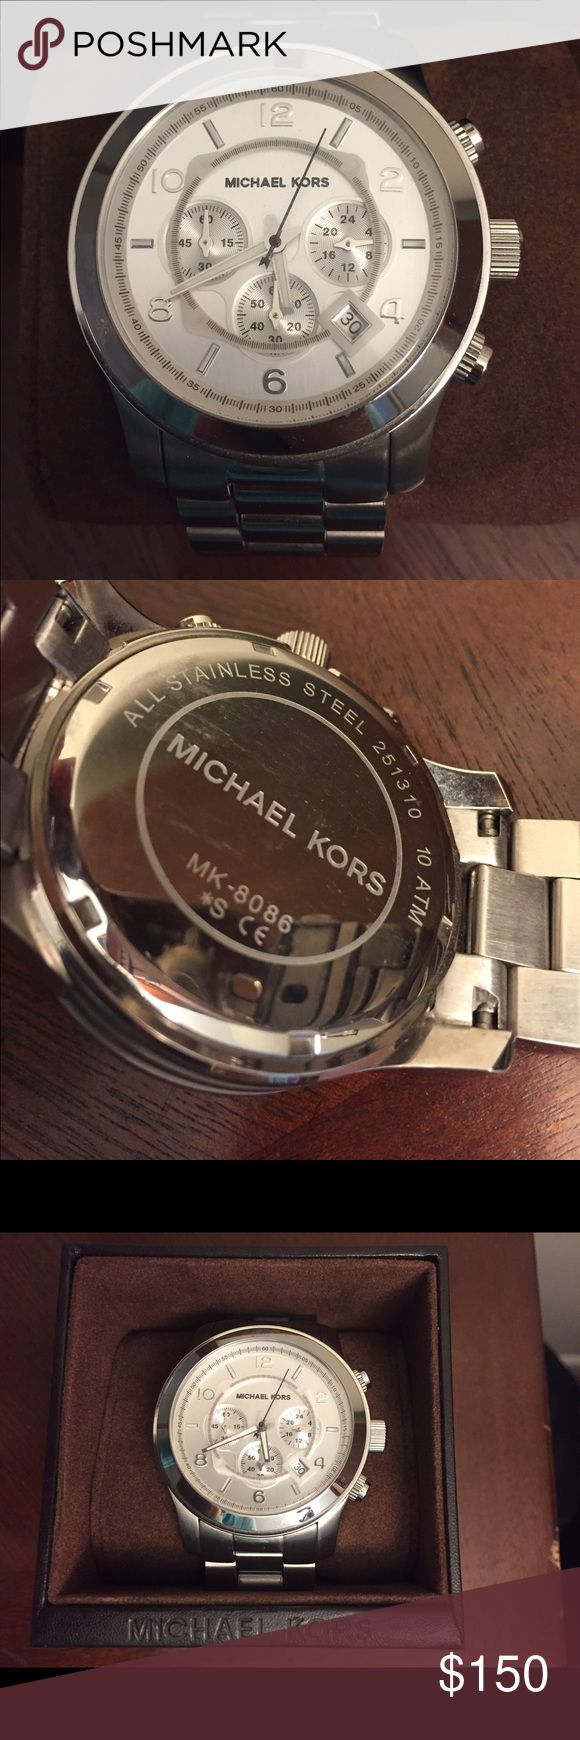 Michael Kors Men's silver watch, model 8086 ⏱Michael Kors men's stainless steel Lexington chronograph watch, model #8086. Practically new in box with original watch pillow and booklet. Rarely worn and in excellent condition. Needs new battery. Make an offer!⏱ Michael Kors Accessories Watches